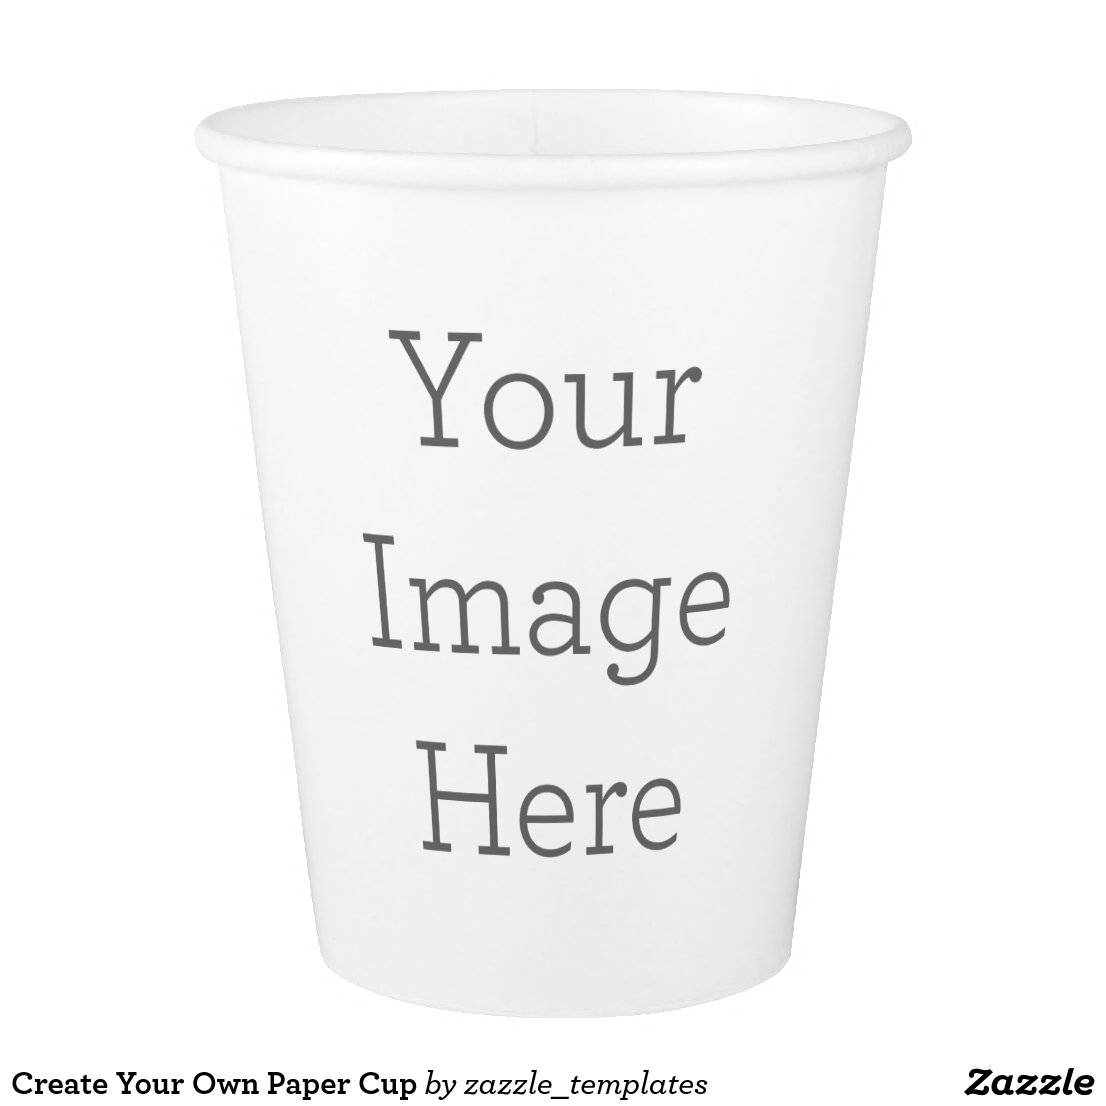 Create Your Own Paper Cups